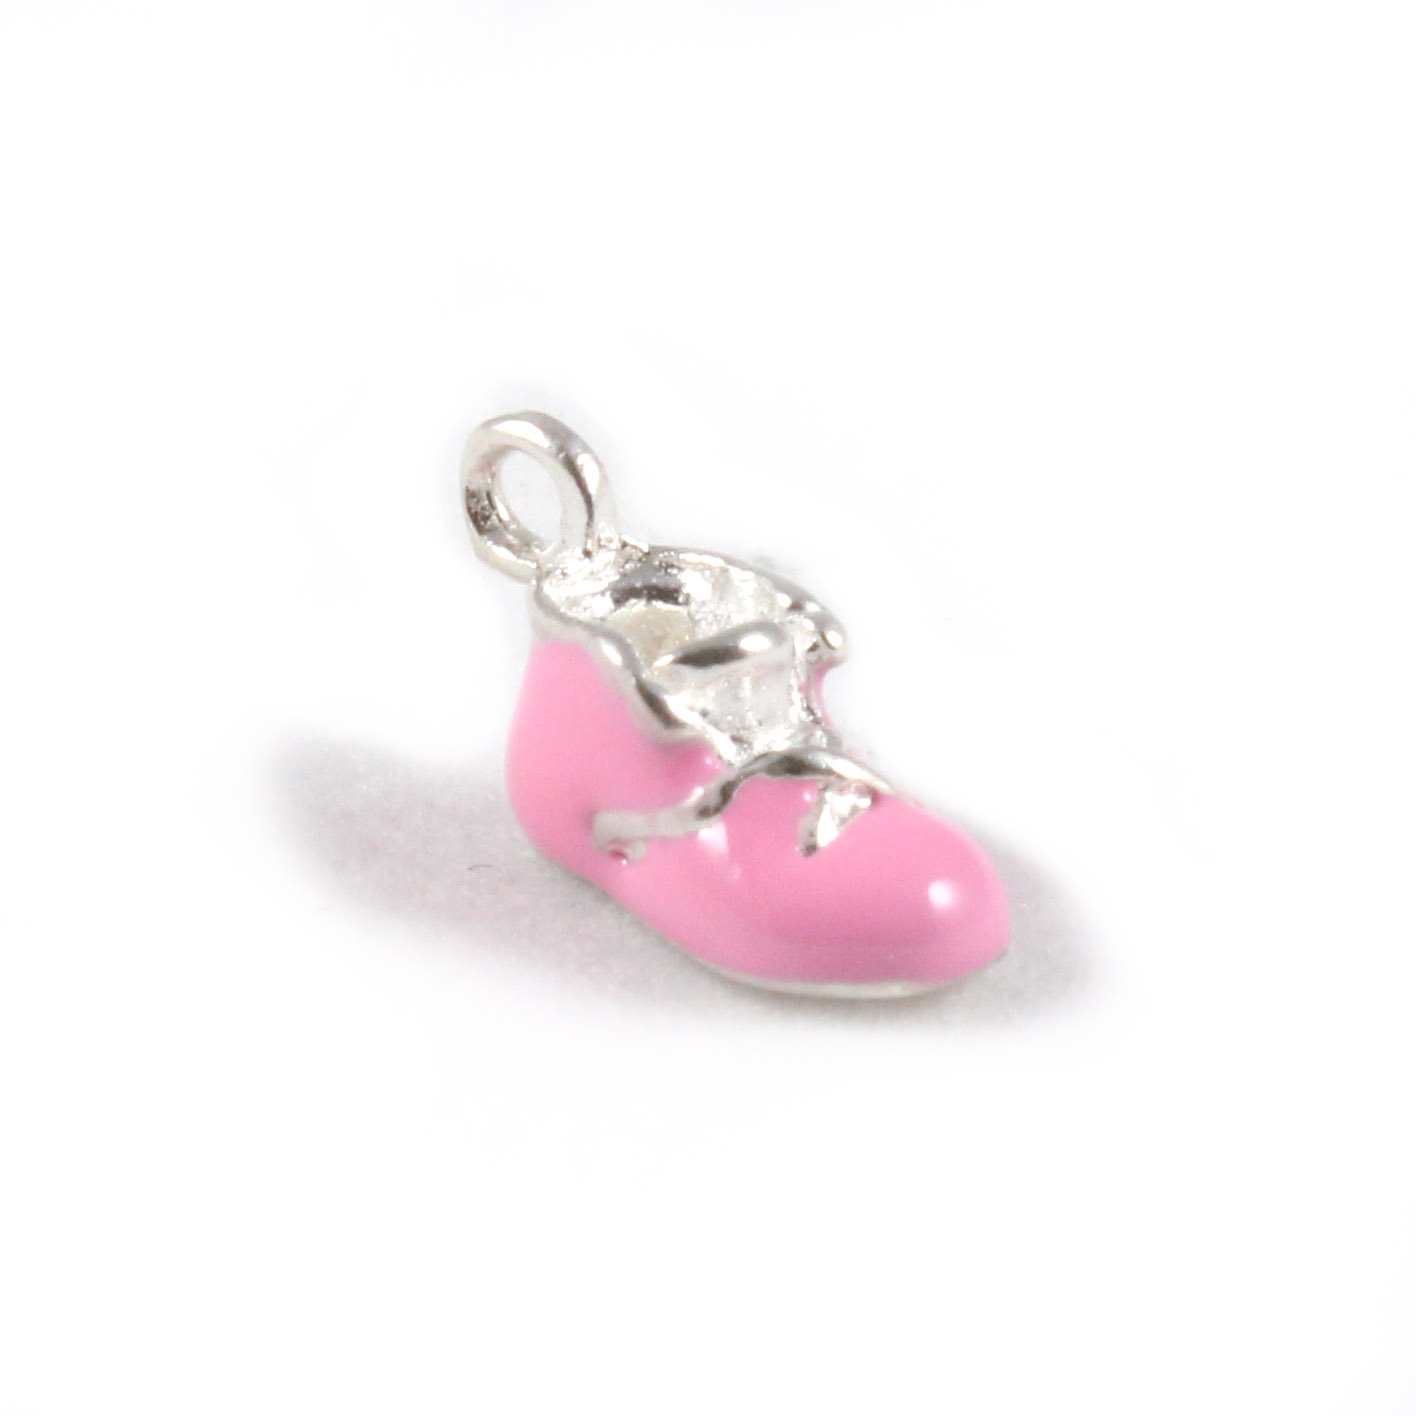 Pink Baby Shoe 3D Sterling Silver & Enamel Charms